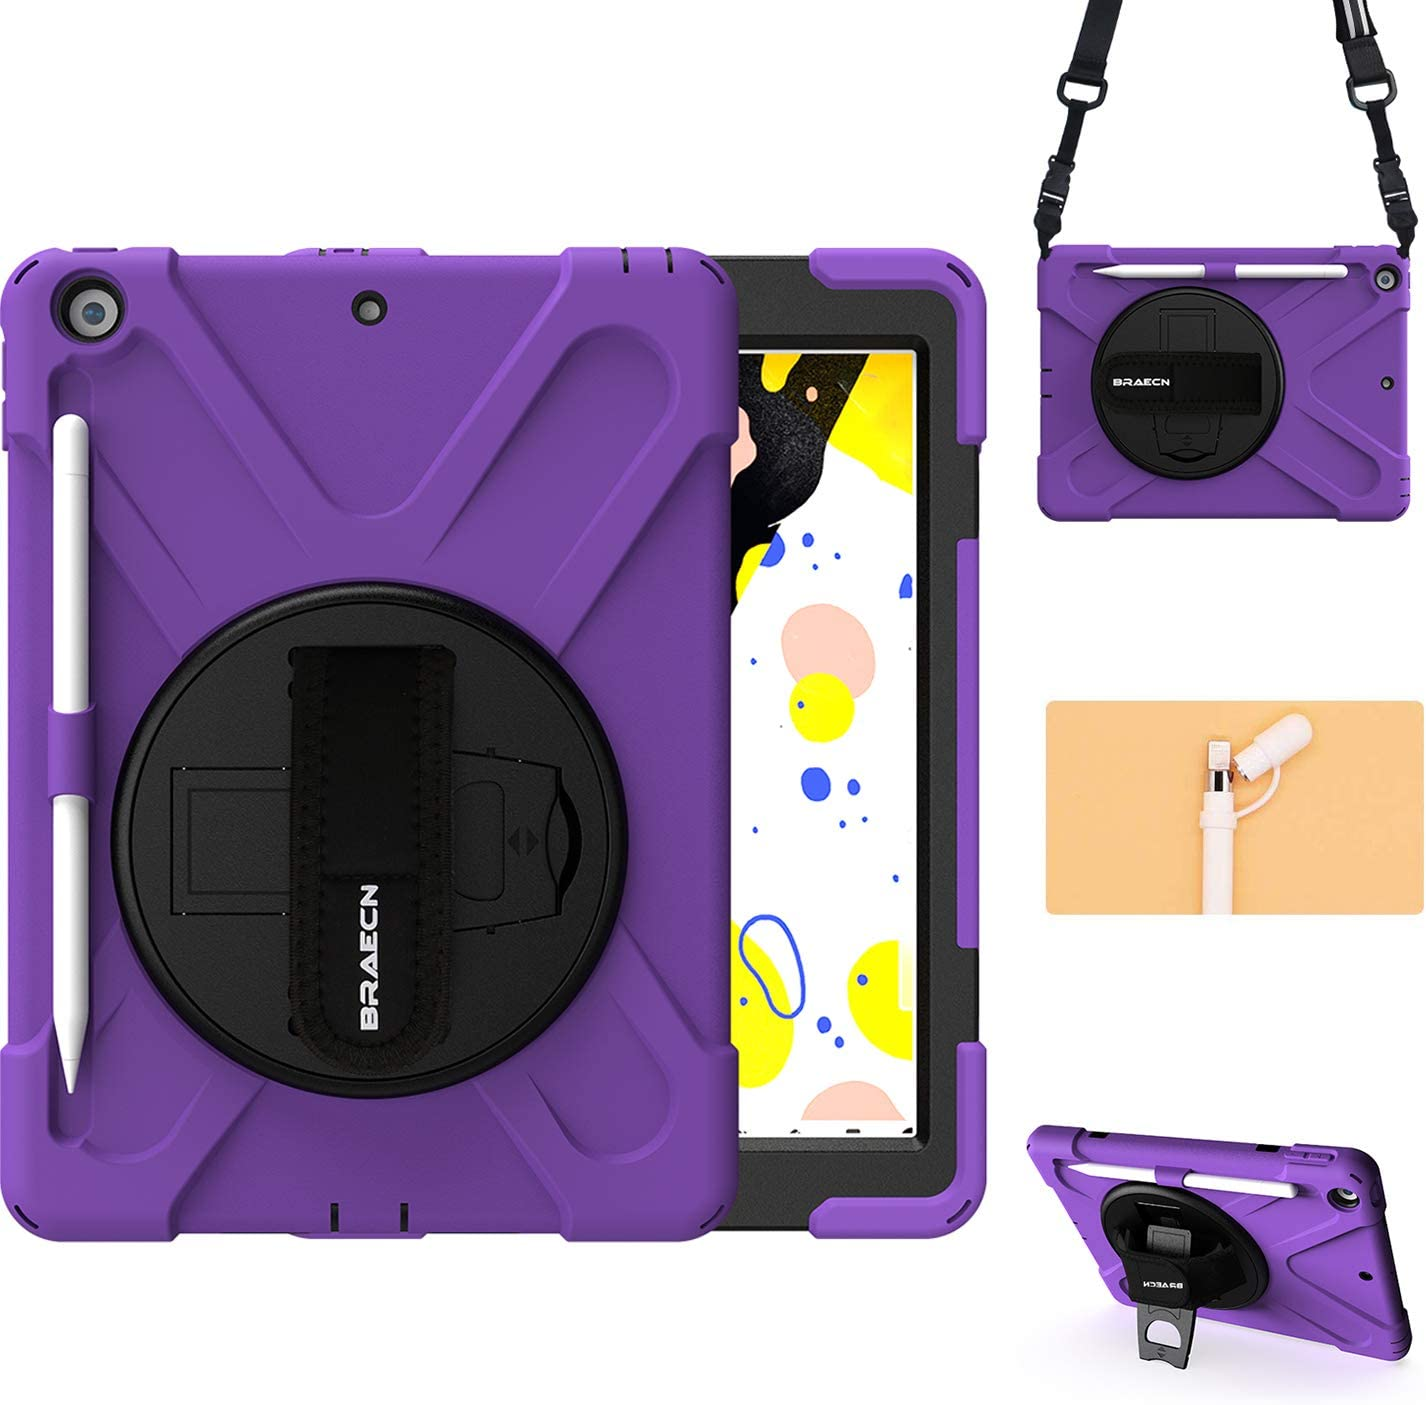 "BRAECN Case for New iPad 10.2"" 2020/2019, 8th/7th Generation iPad Case with [Pencil Holder][Pencil Cap Holder][Hand Strap][Carrying Strap][Kickstand] Rugged Shockproof Cover for Kids Girls Boys-Purple"